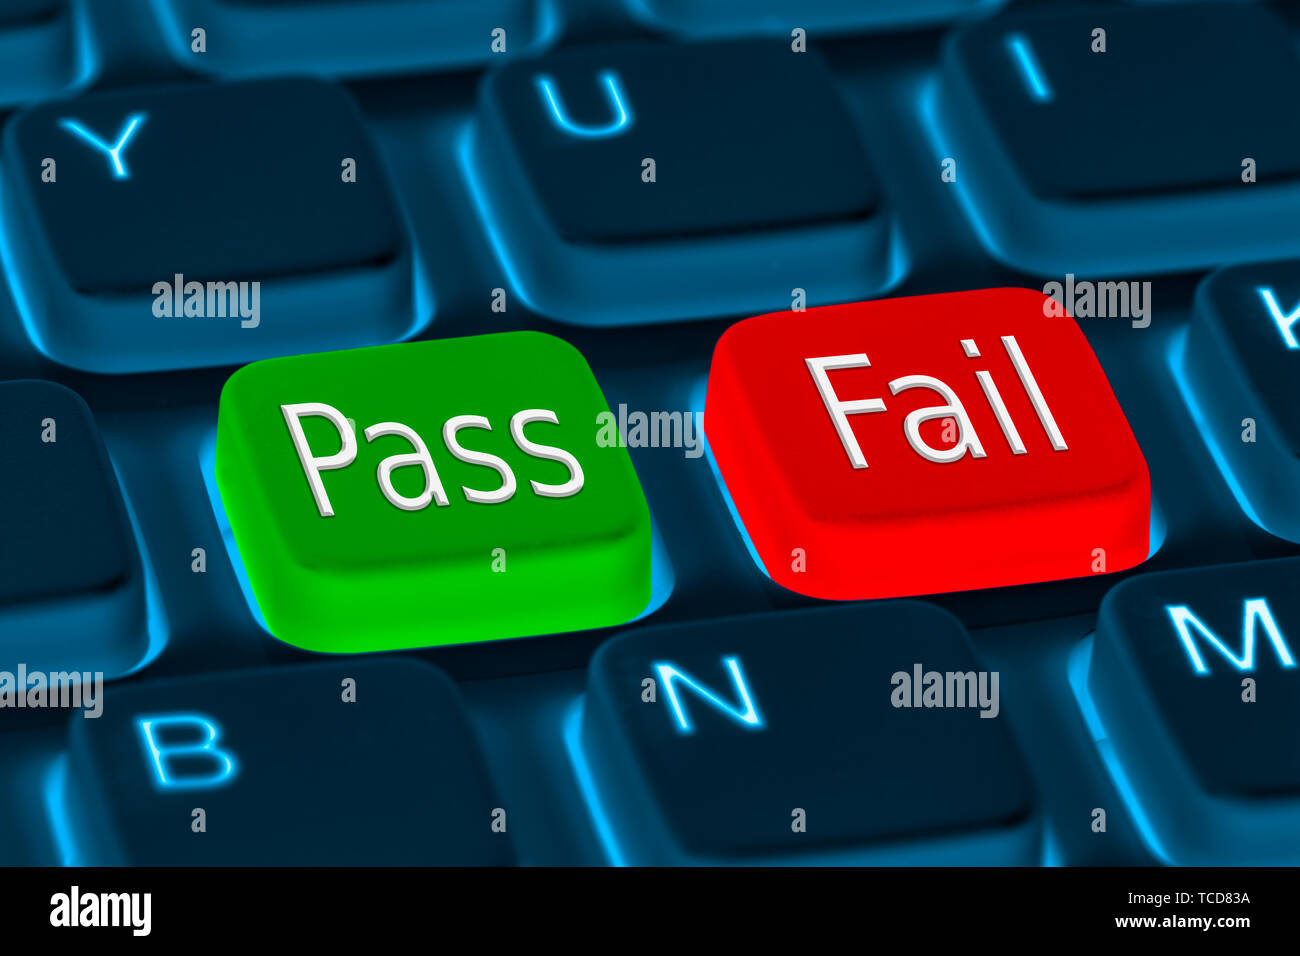 Pass or Fail (Passed or Failed, Passing or Failing) buttons on a computer keyboard. - Stock Image